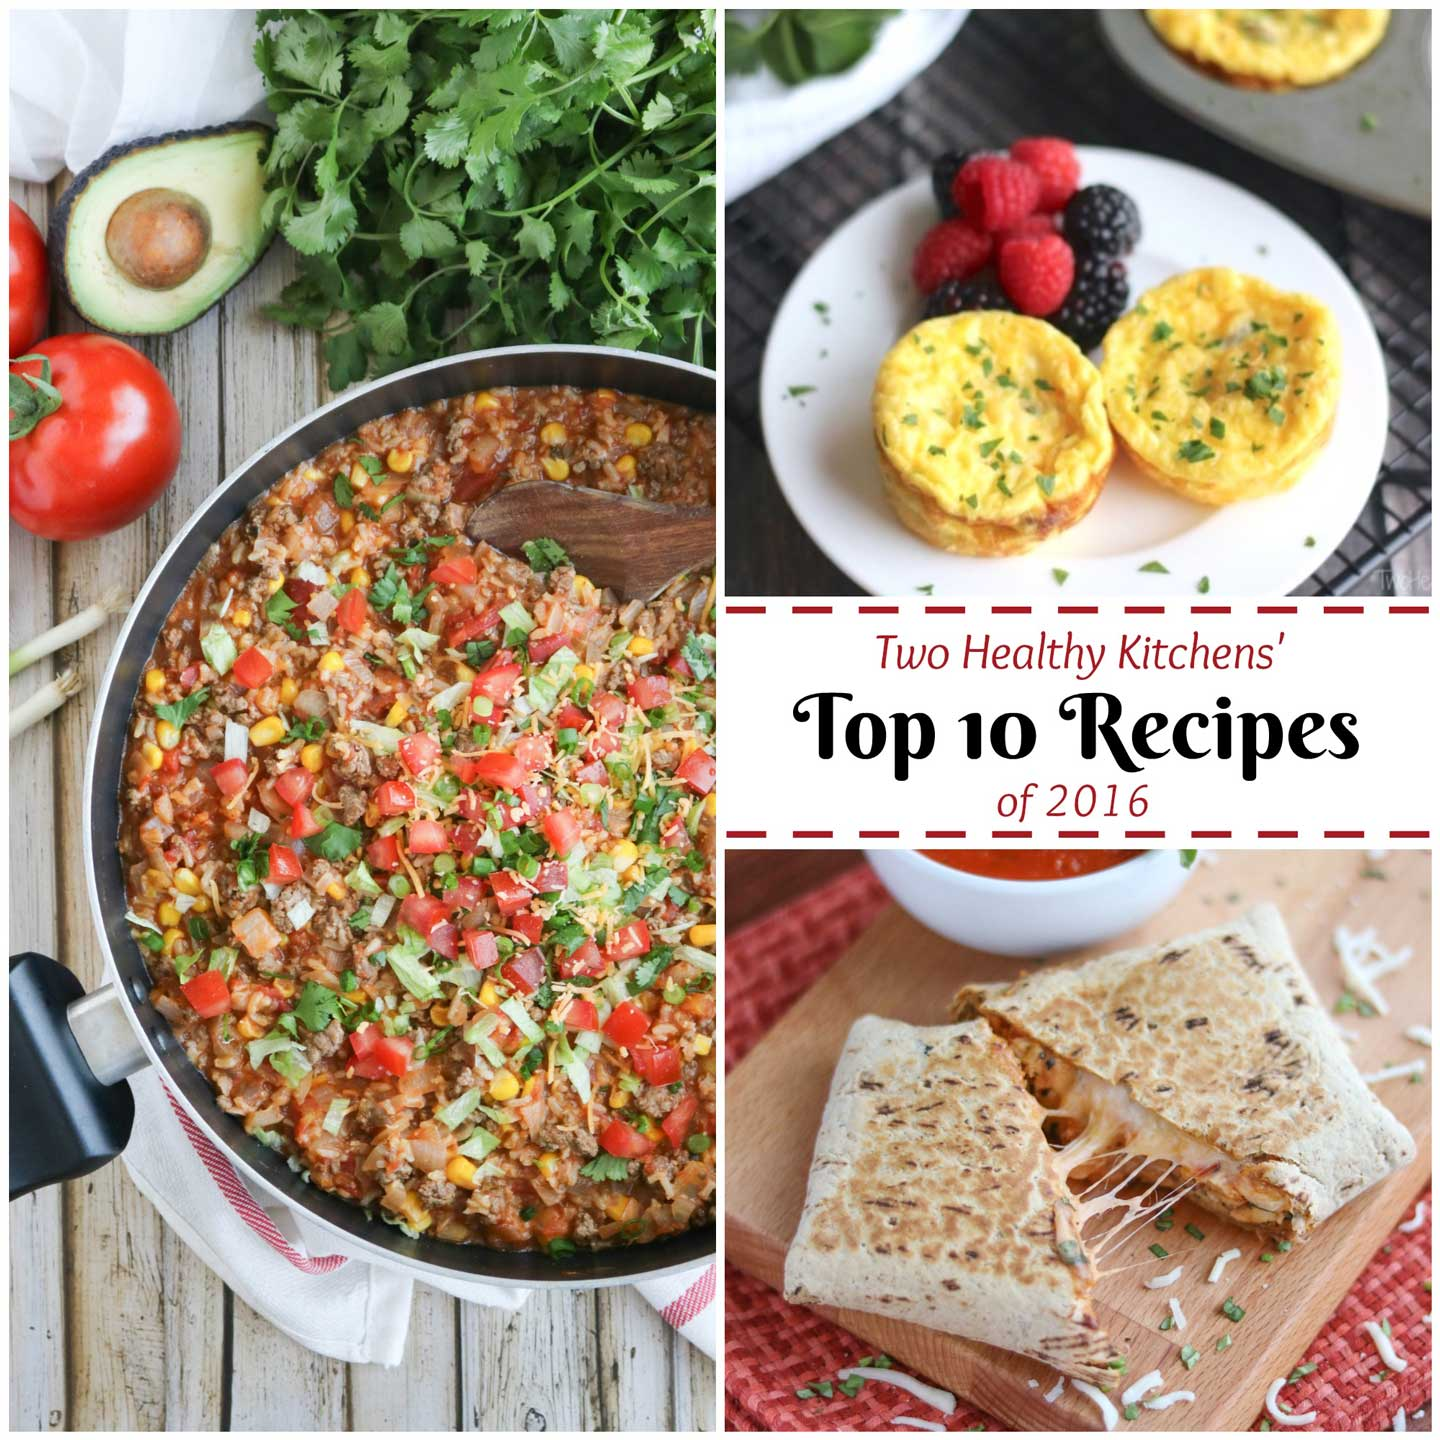 Easy, healthy recipes your whole family will love! These favorite recipes are absolute must-tries – our most popular recipes of the year! From the runaway hit recipe for our Chicken Parmesan Wraps to Crustless Breakfast Quiche Cups, a fast Taco Skillet Dinner … and even 2-Ingredient Dog Treats! These easy recipes are healthy and delicious, and so quick and easy, too! Easy weeknight dinners, make-ahead breakfasts, grab-and-go meals, freezer meals, and more! | www.TwoHealthyKitchens.com